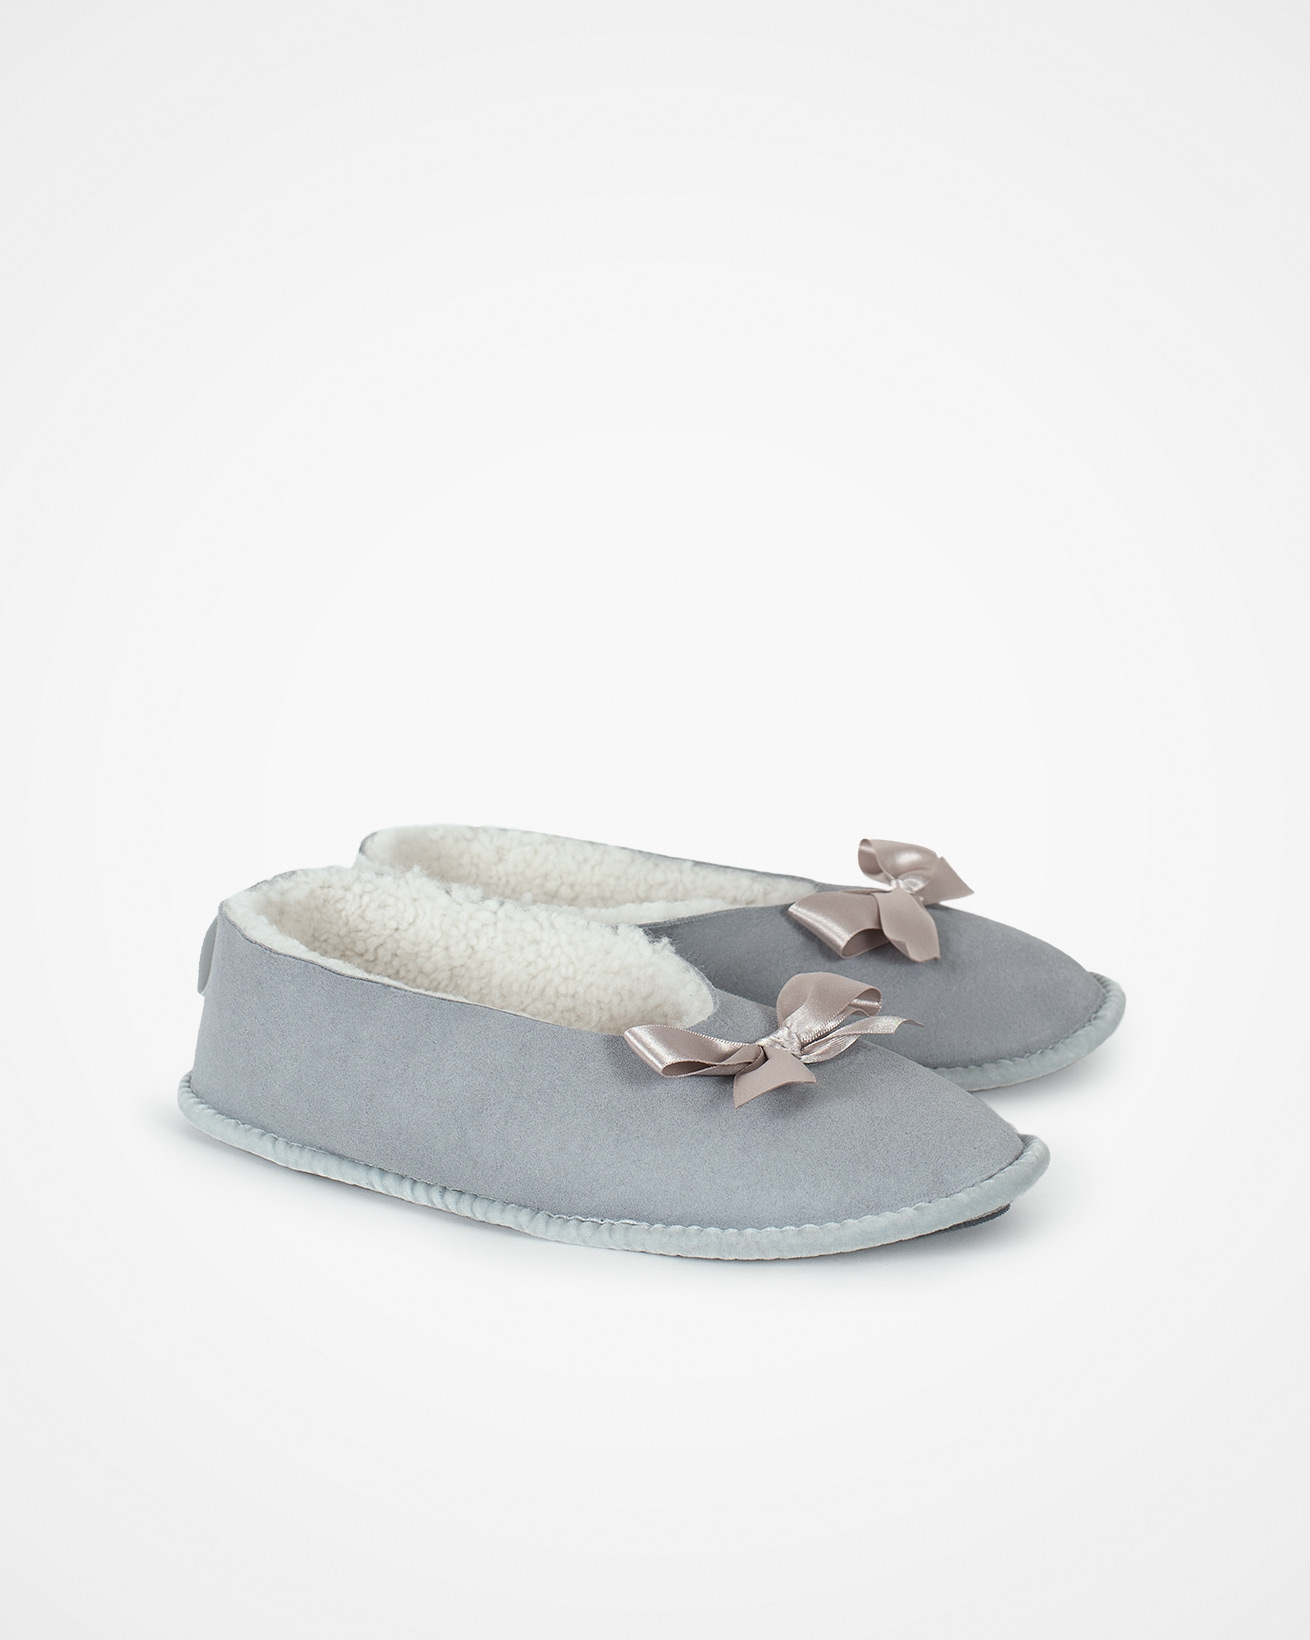 7776_fonteyn-sheepskin-slipper_light-grey_pair.jpg